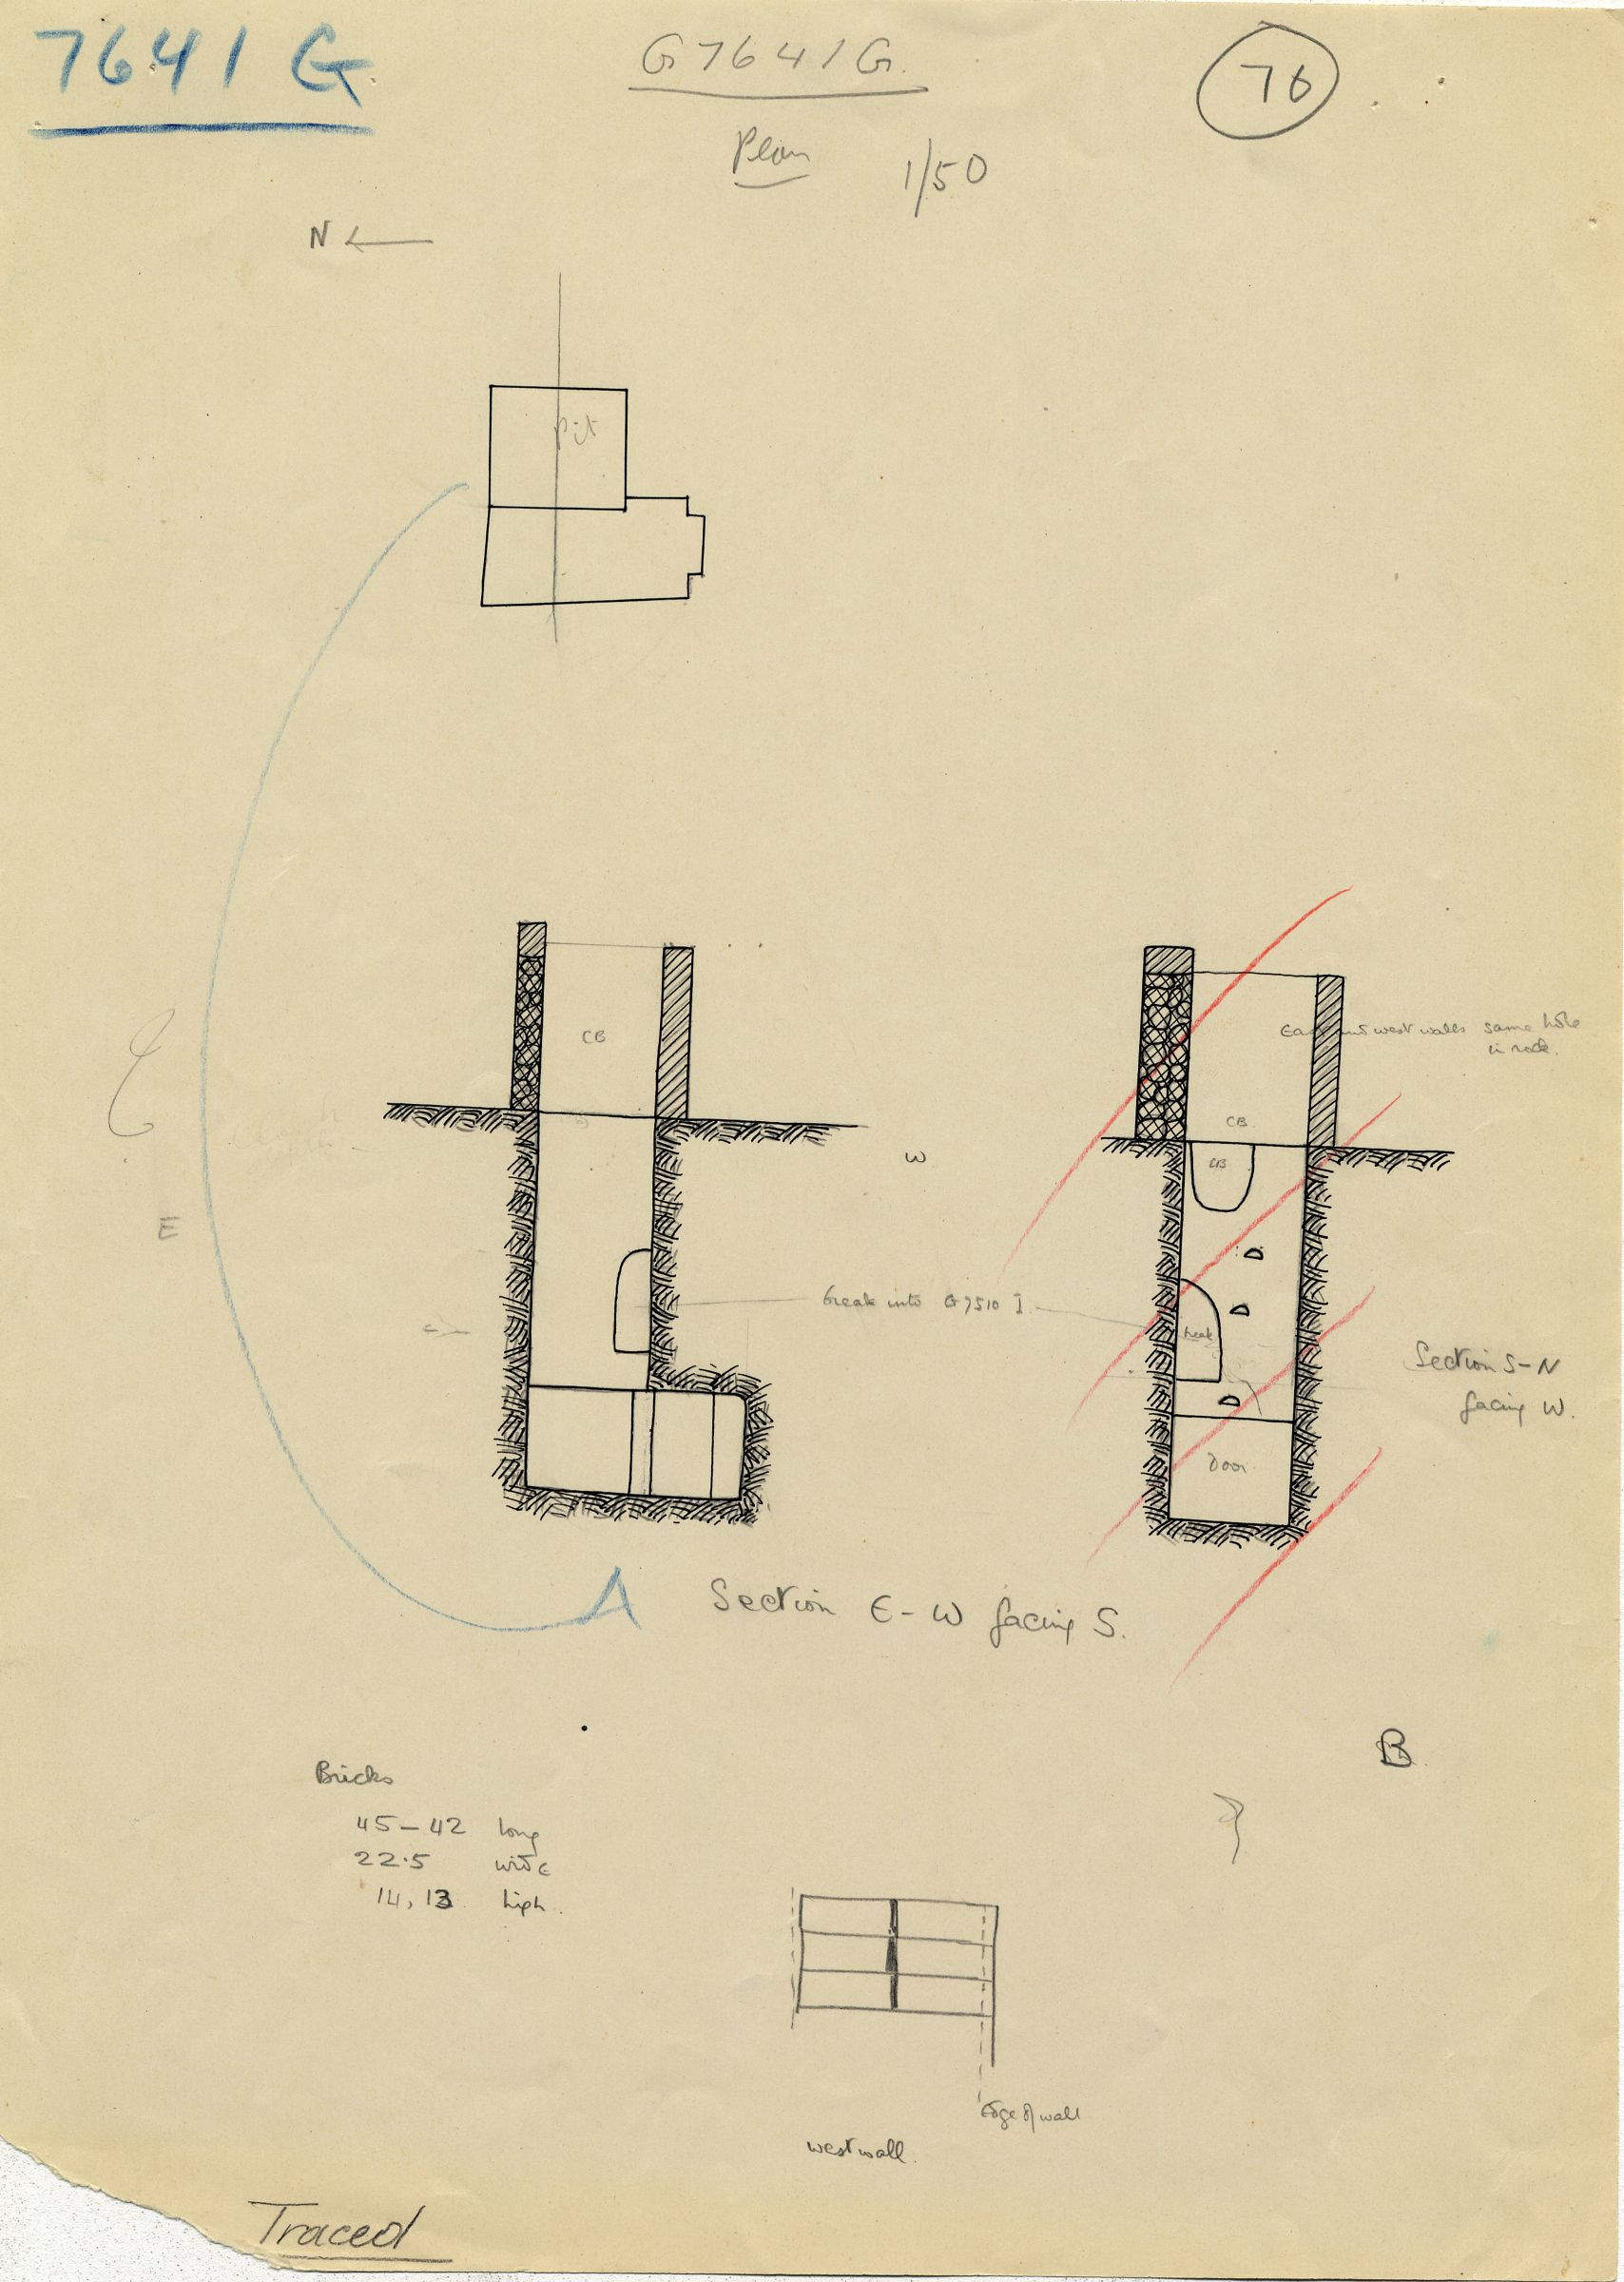 Maps and plans: G 7641, Shaft G